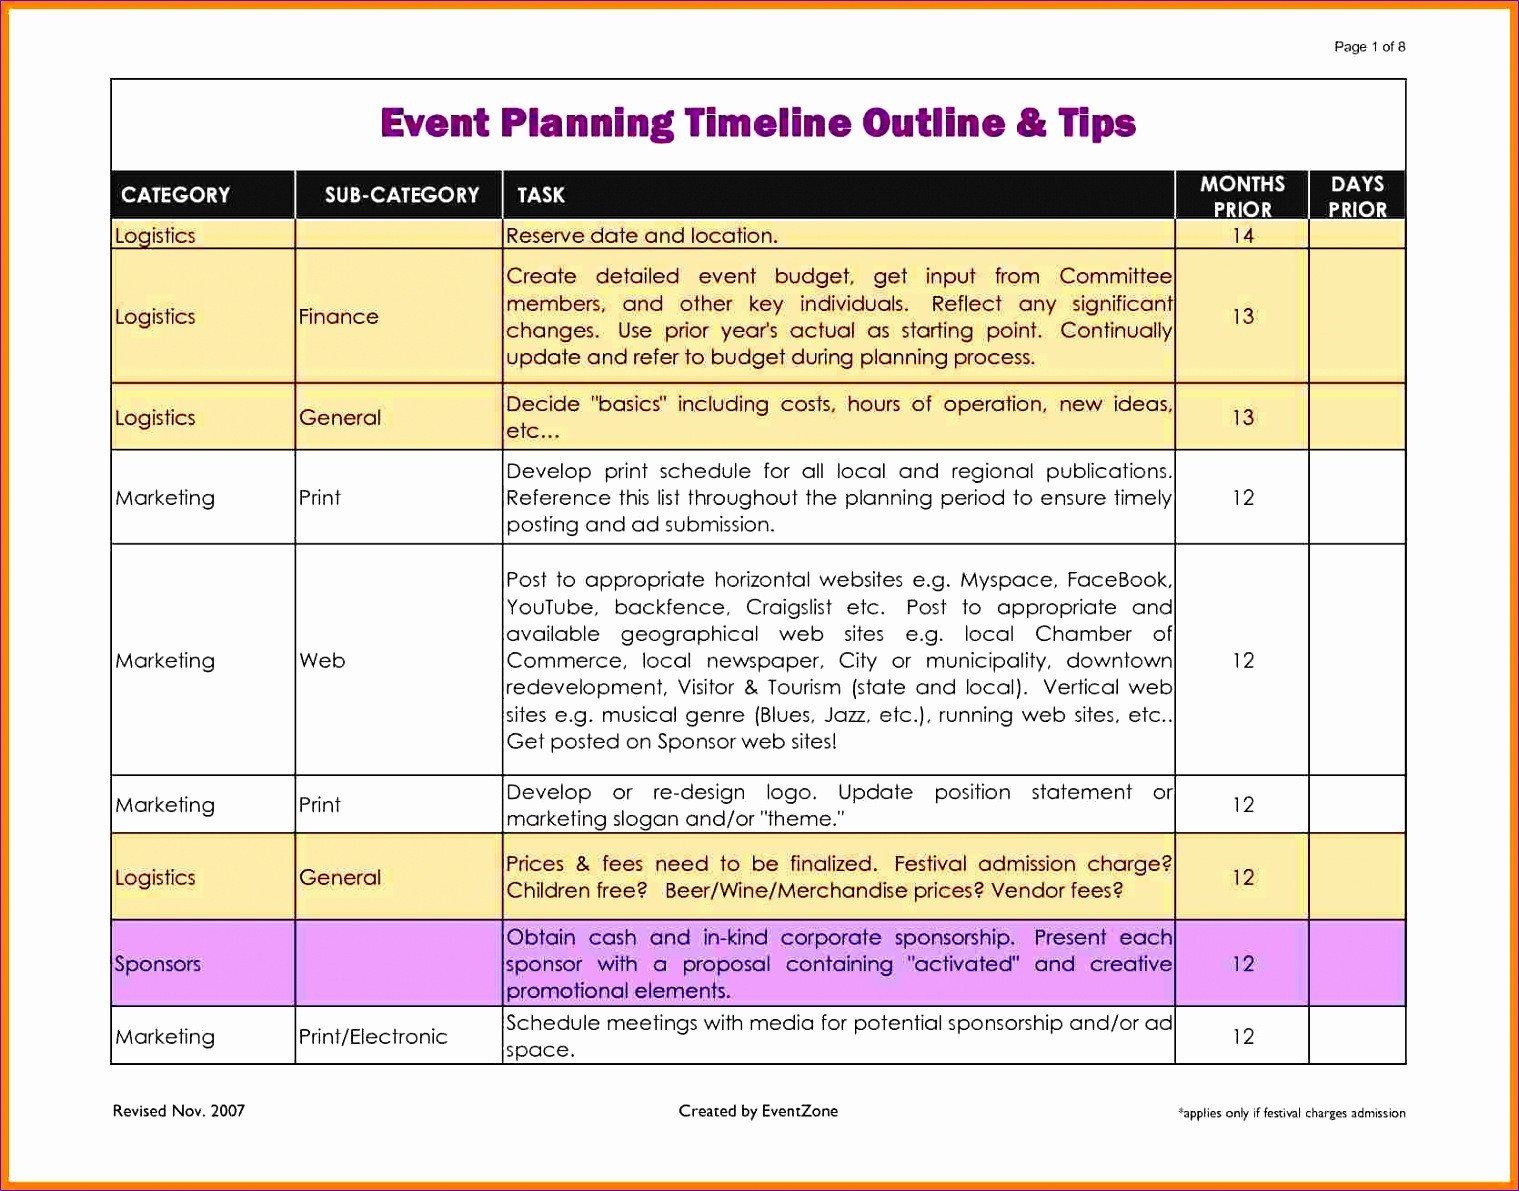 Event Planning Checklist Template Excel 8 Free event Planning Checklist Template Excel